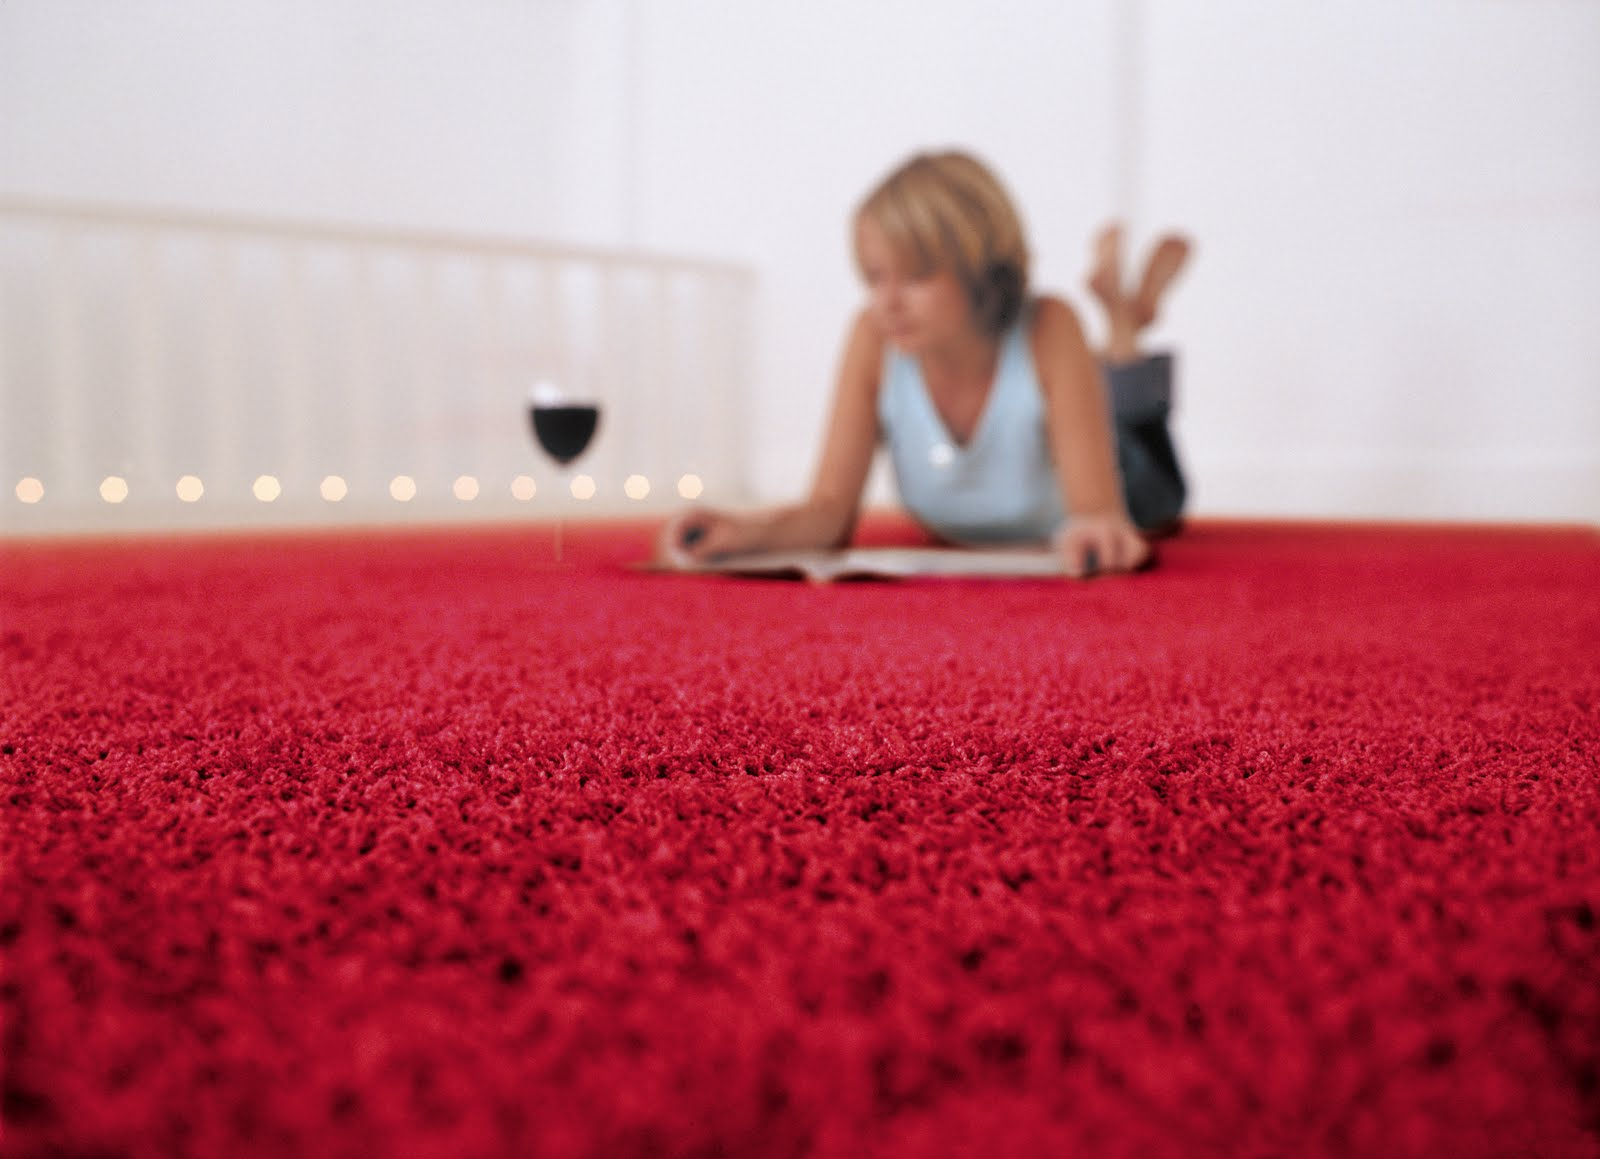 Carpet Cleaning Balham   MVIR Professional Cleaning Services